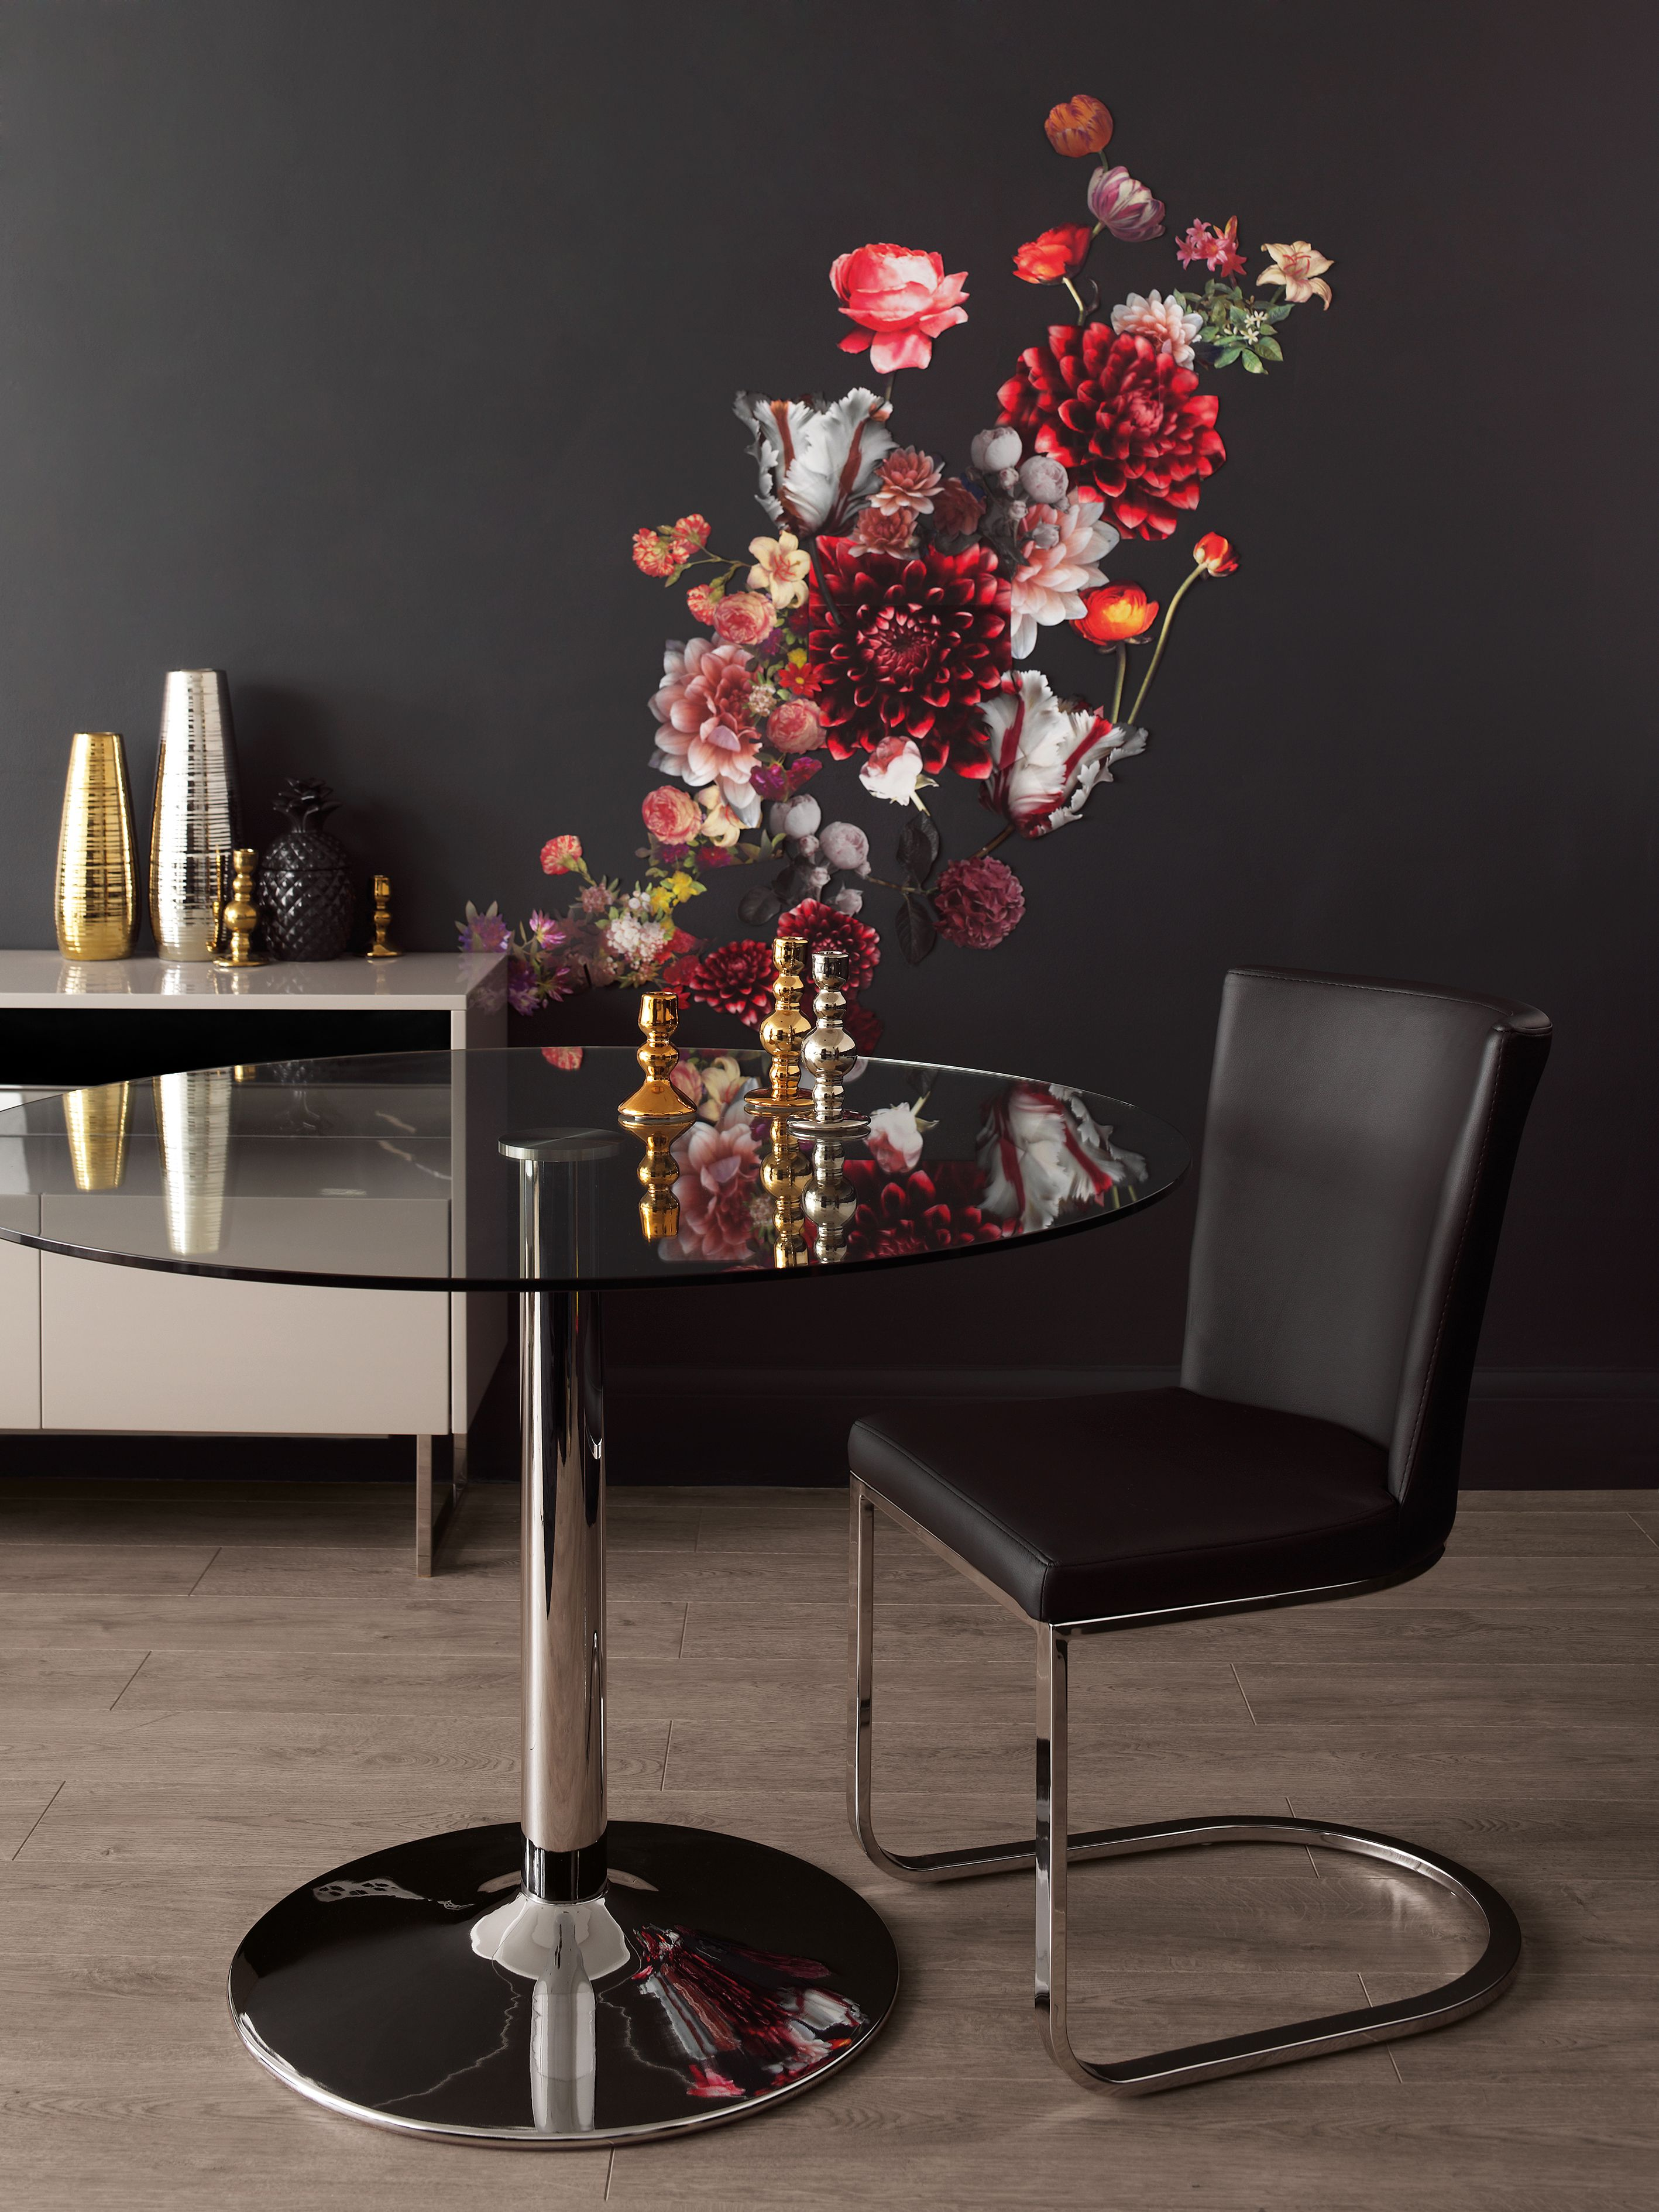 Floral Wall Art Reflecting In A Glass Dining Table Create